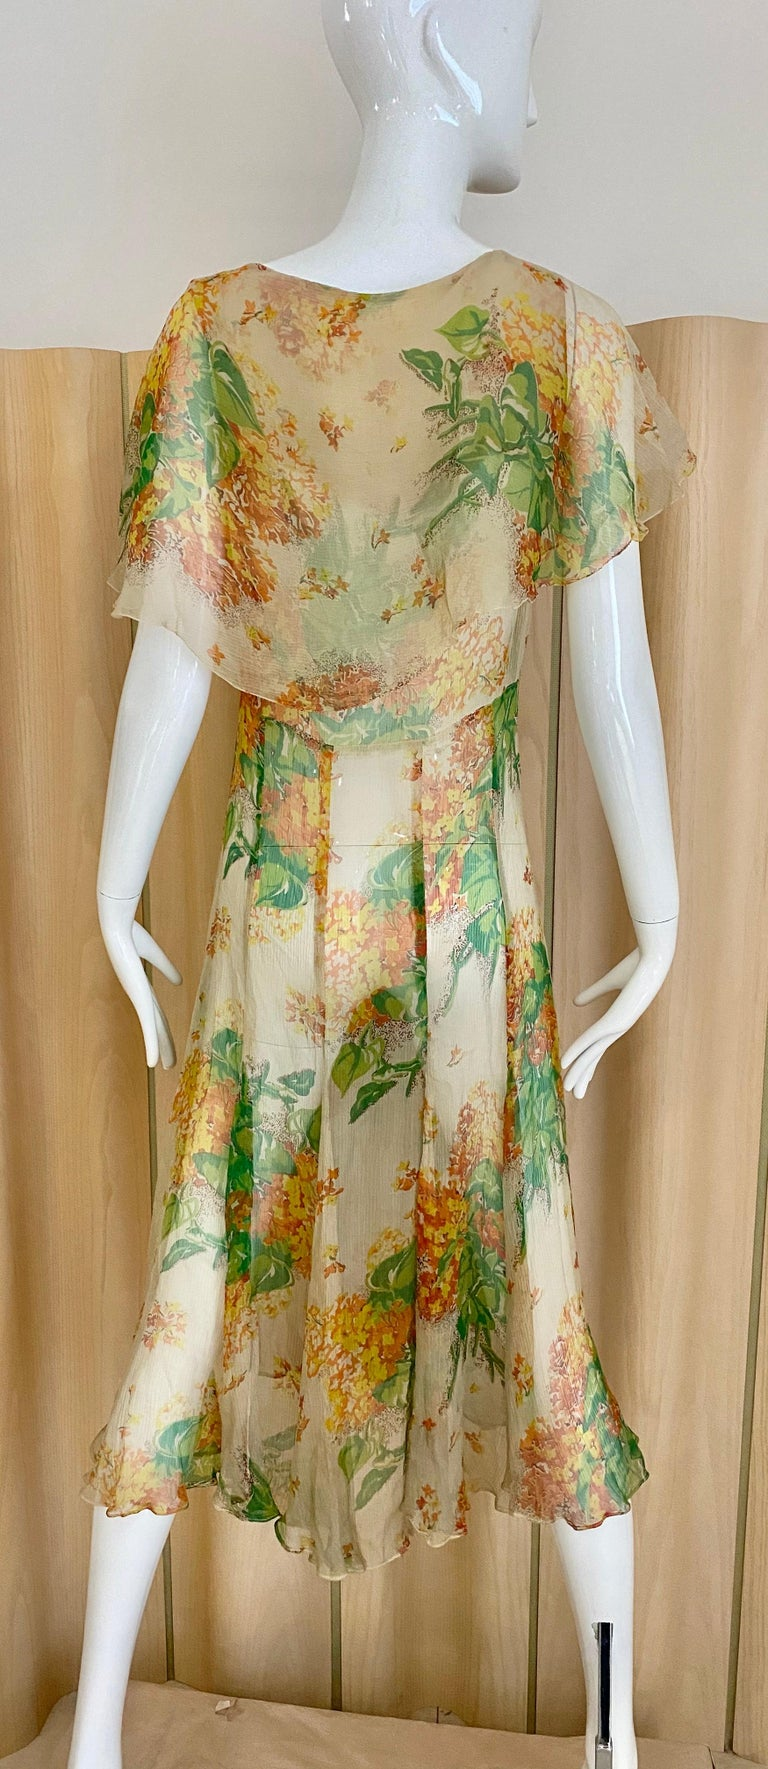 1930s Creme and Green Floral Print Silk Chiffon Day Dress For Sale 1